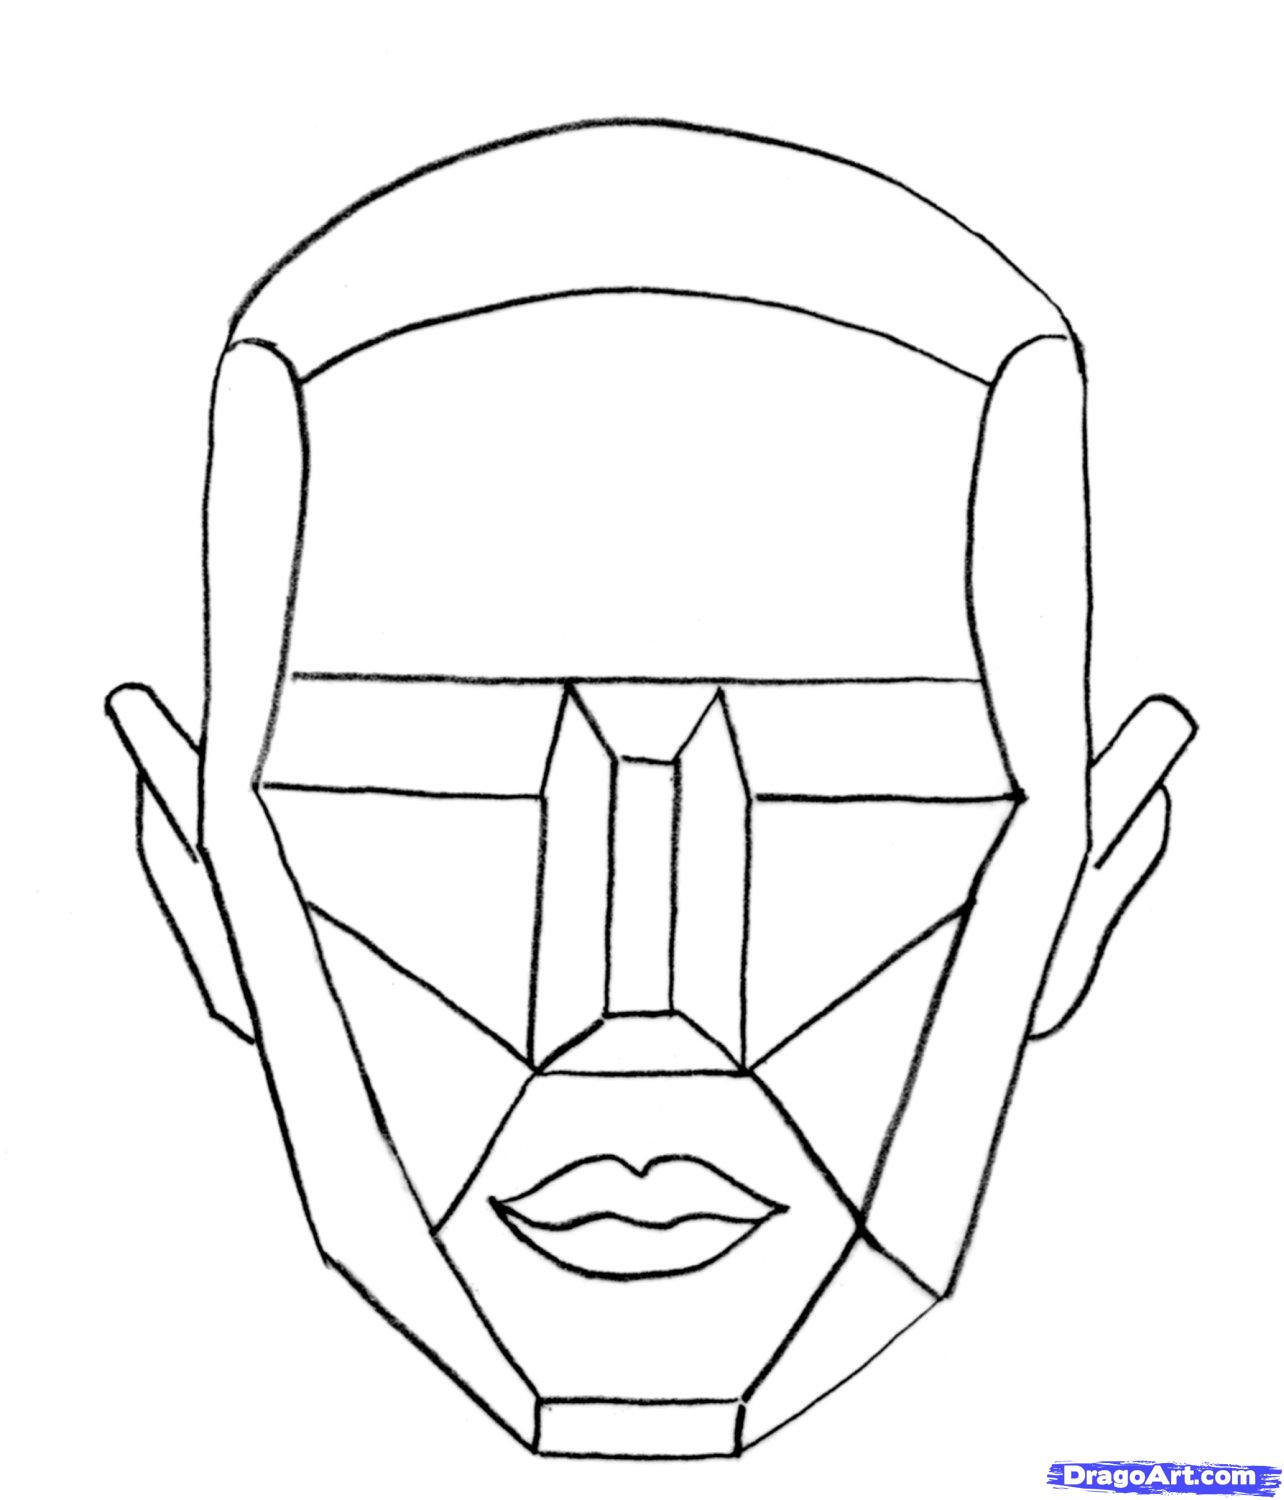 1284x1500 How To Draw The Female Head Tutorial Takes You Step By Step